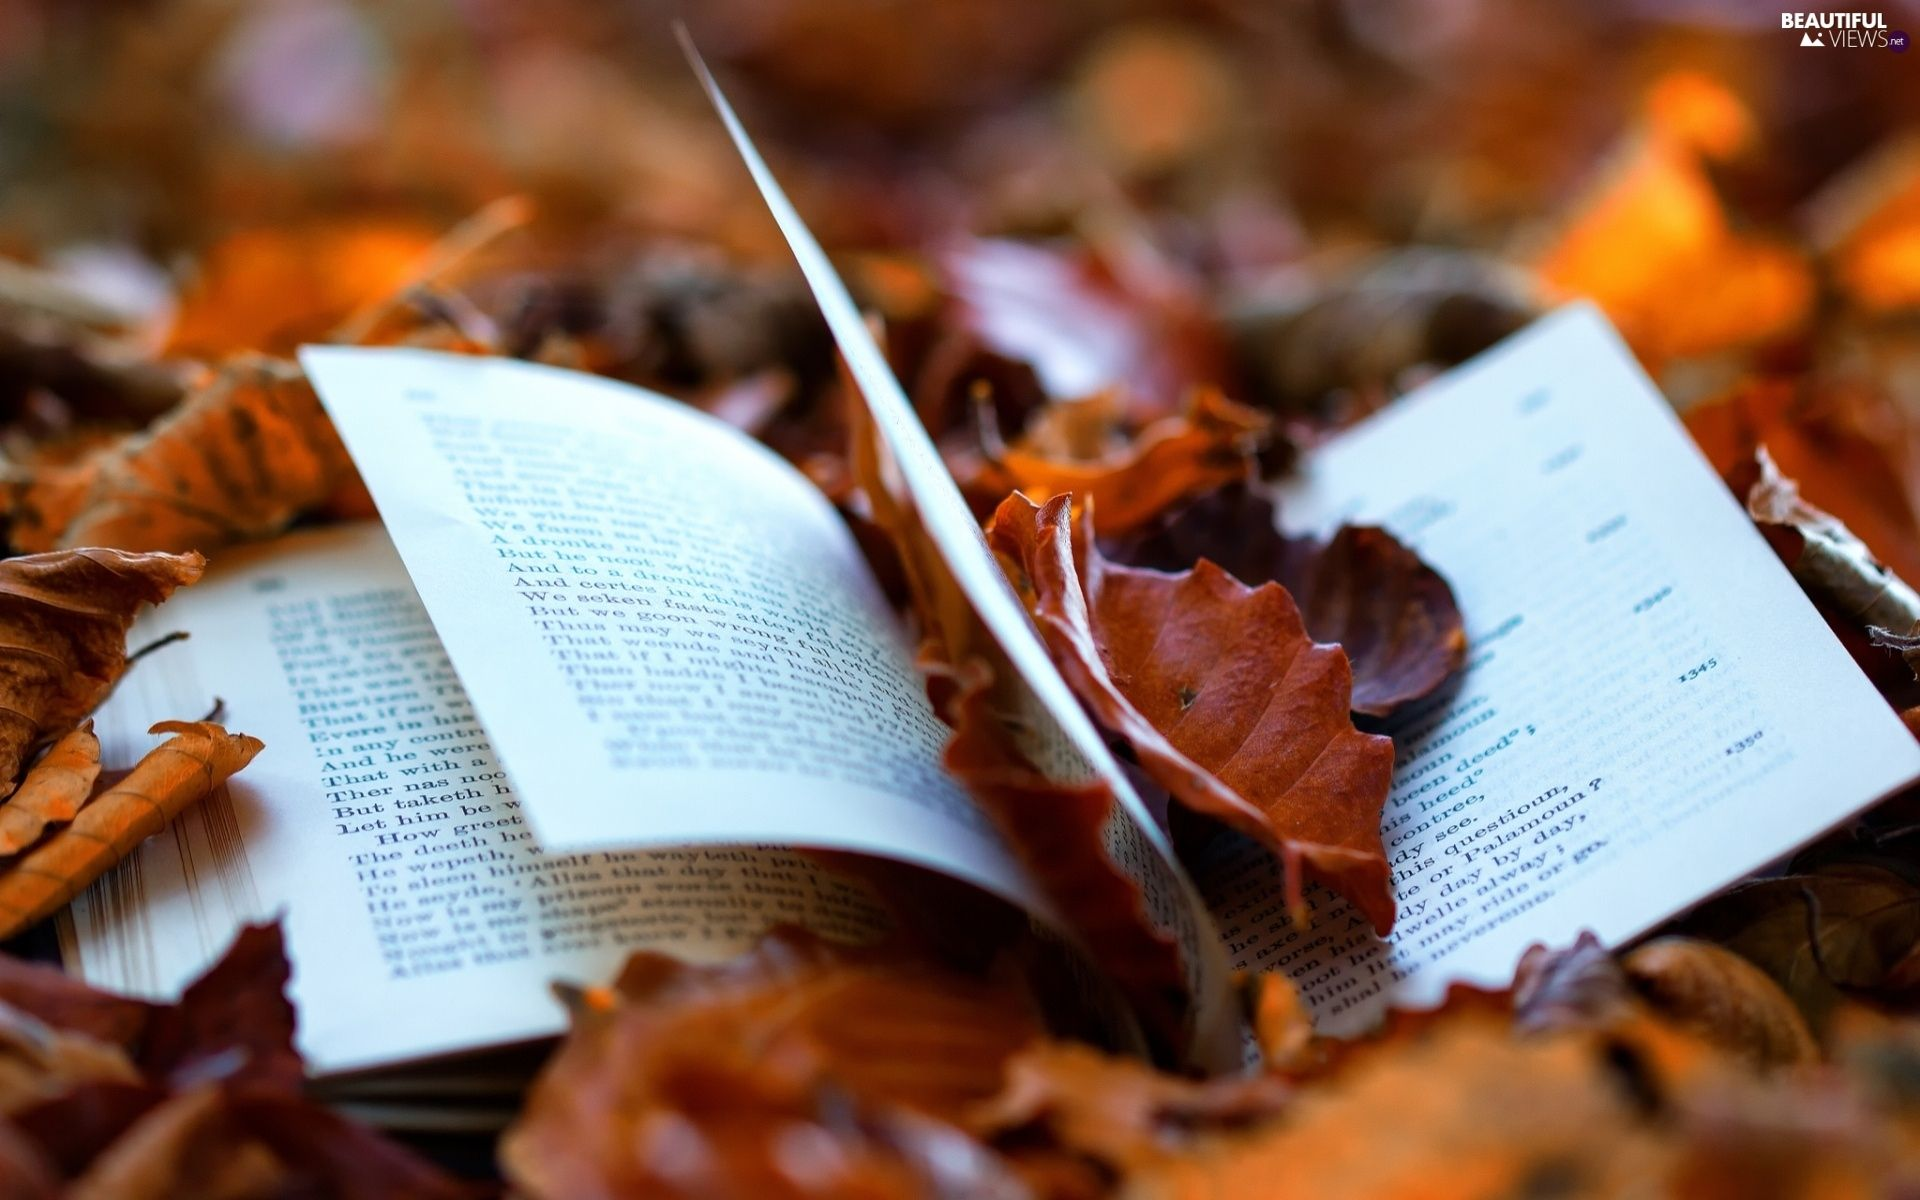 From the book where you might see the beautiful autumn leaves - Book Autumn Google Keres S